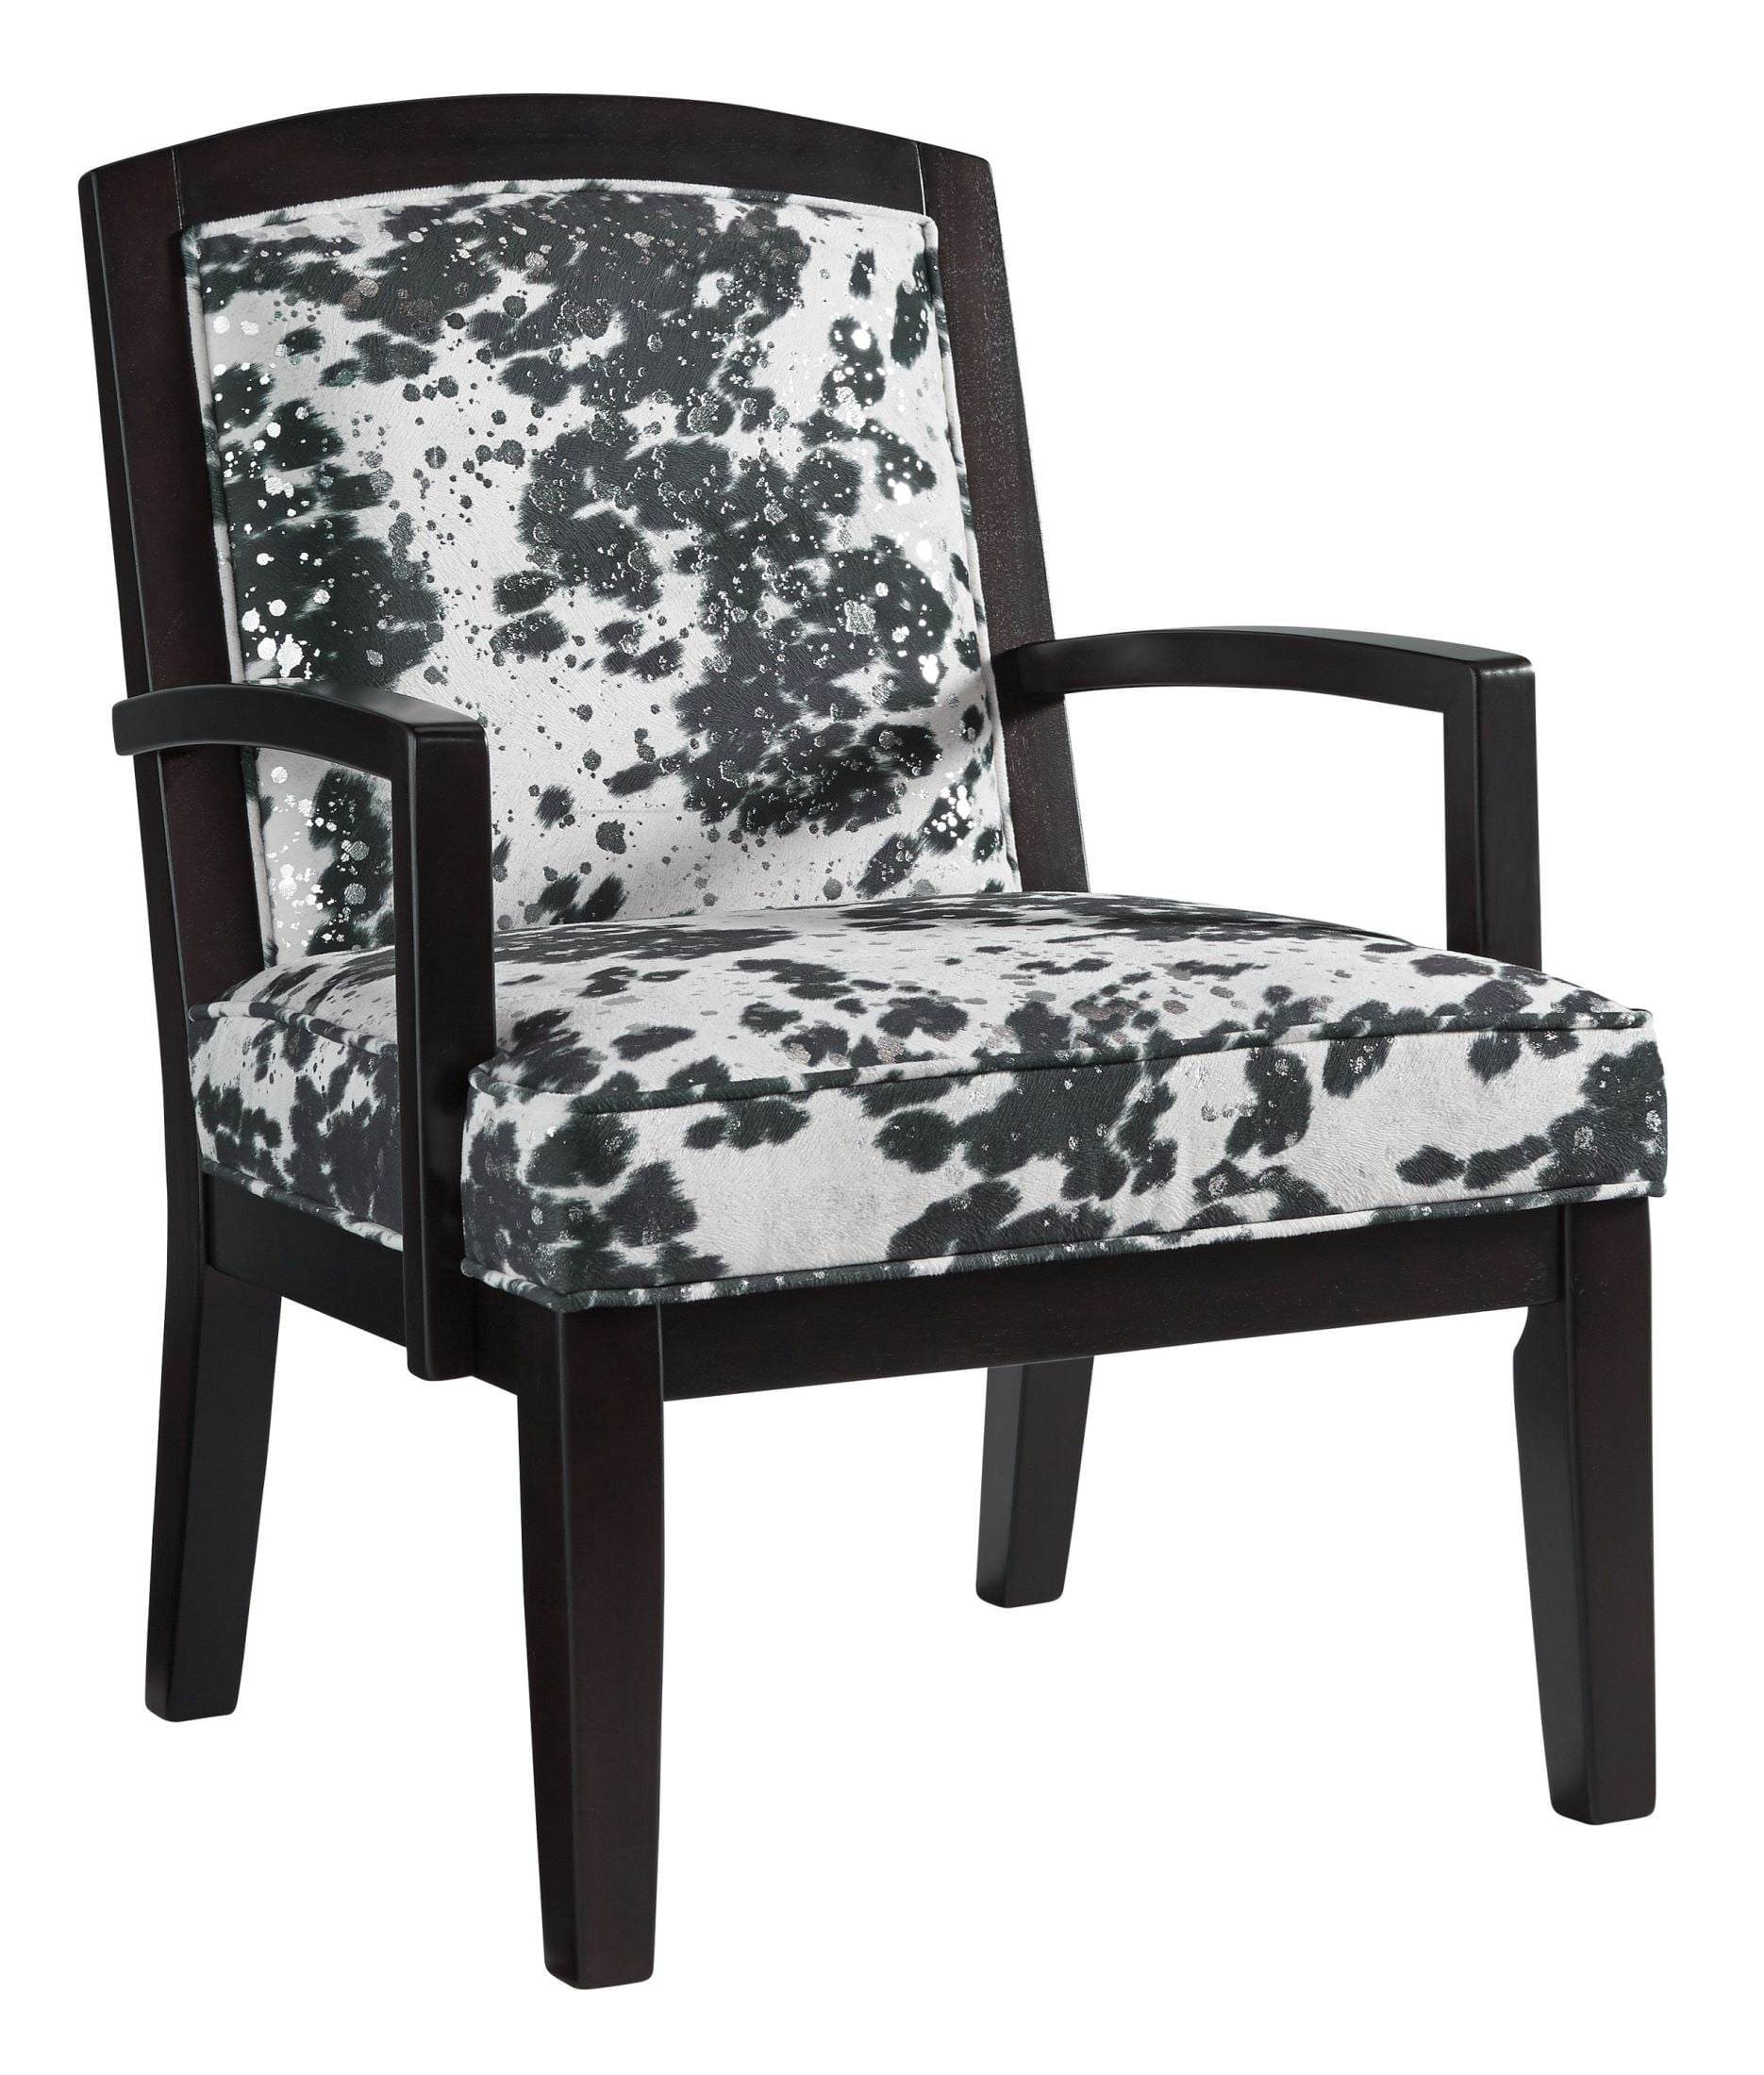 Attrayant X. Treven Black And Cream Accent Chair